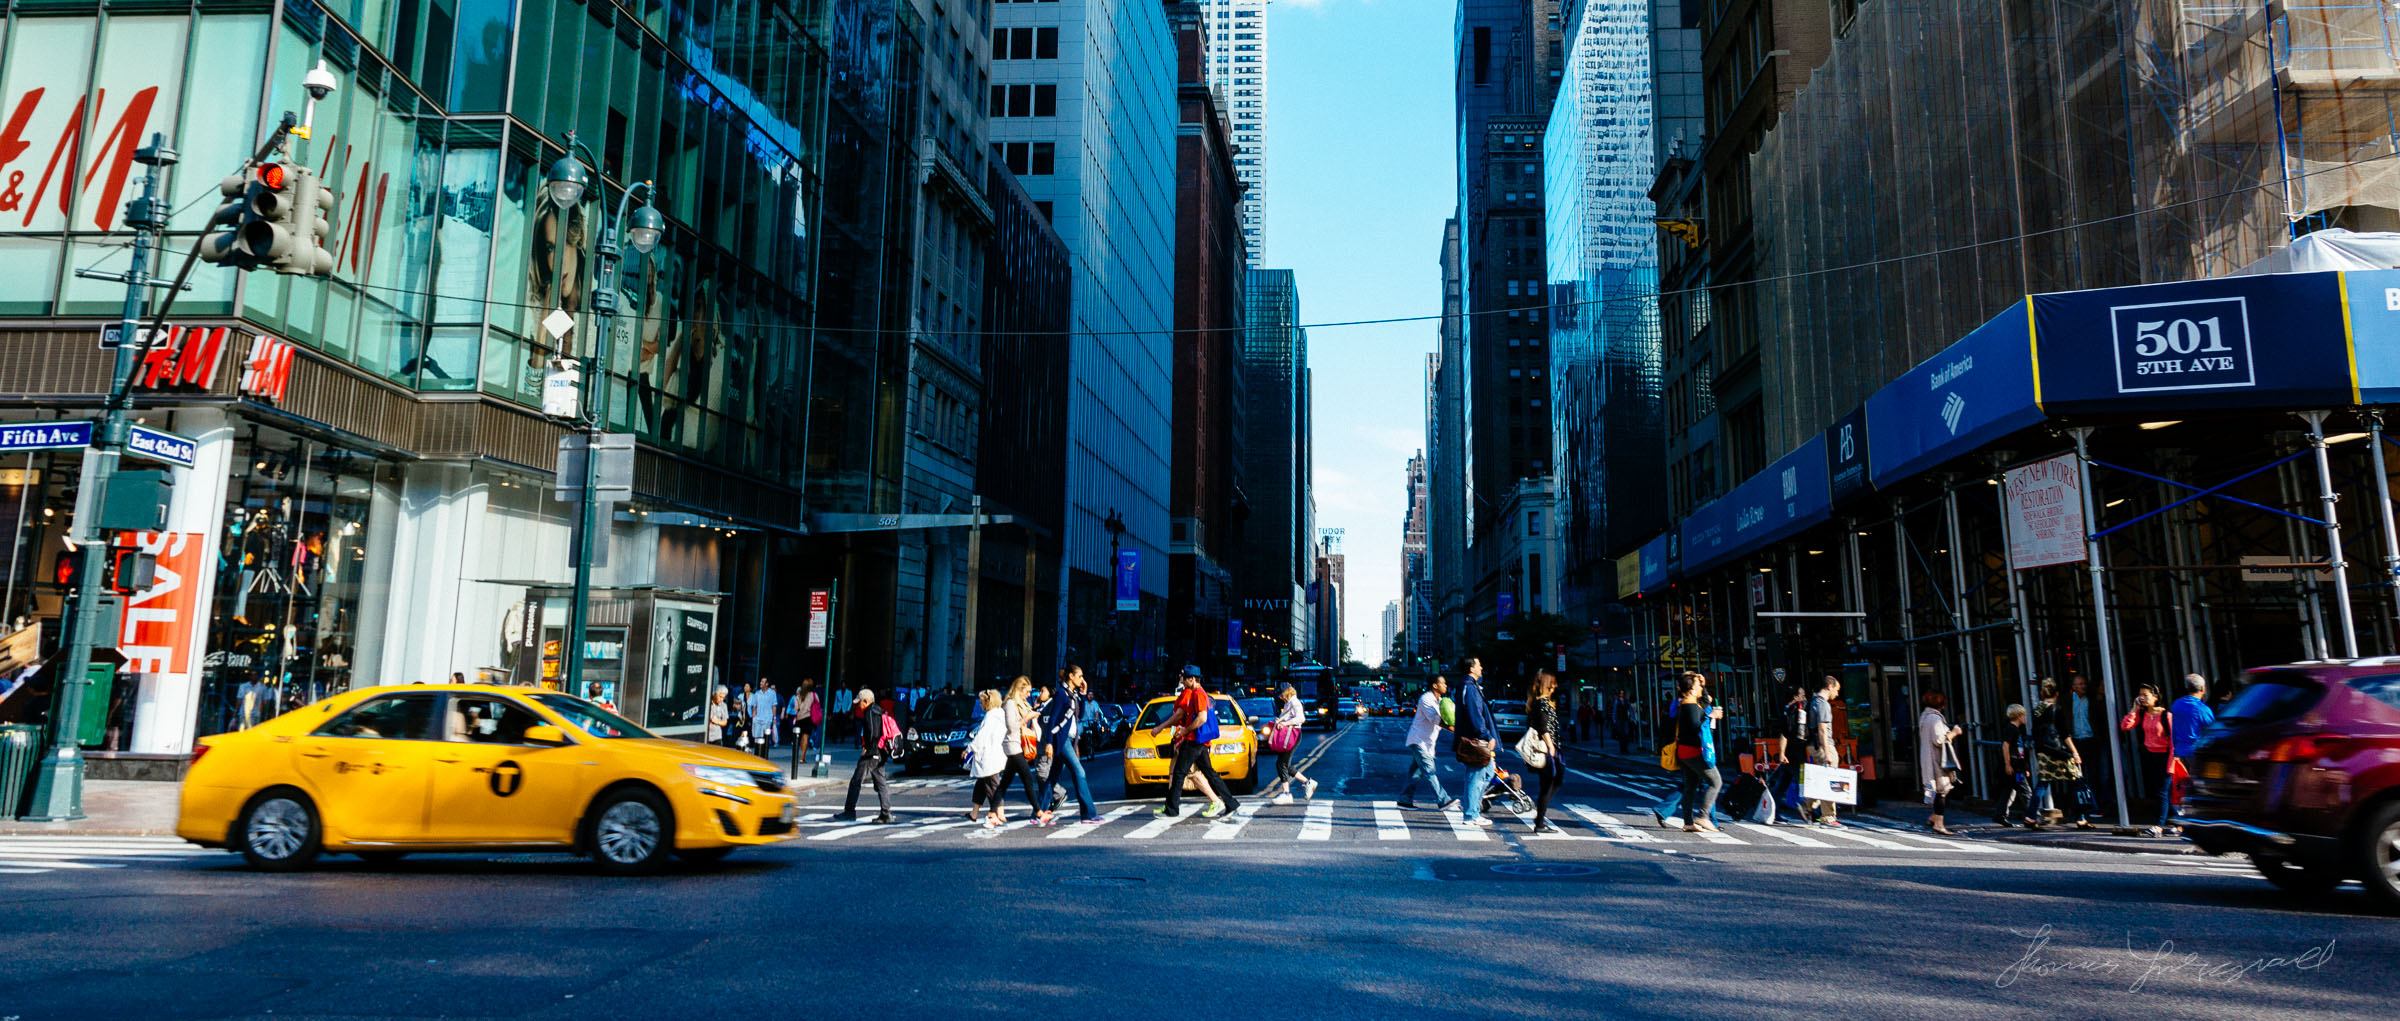 A Street Crossing in NYC